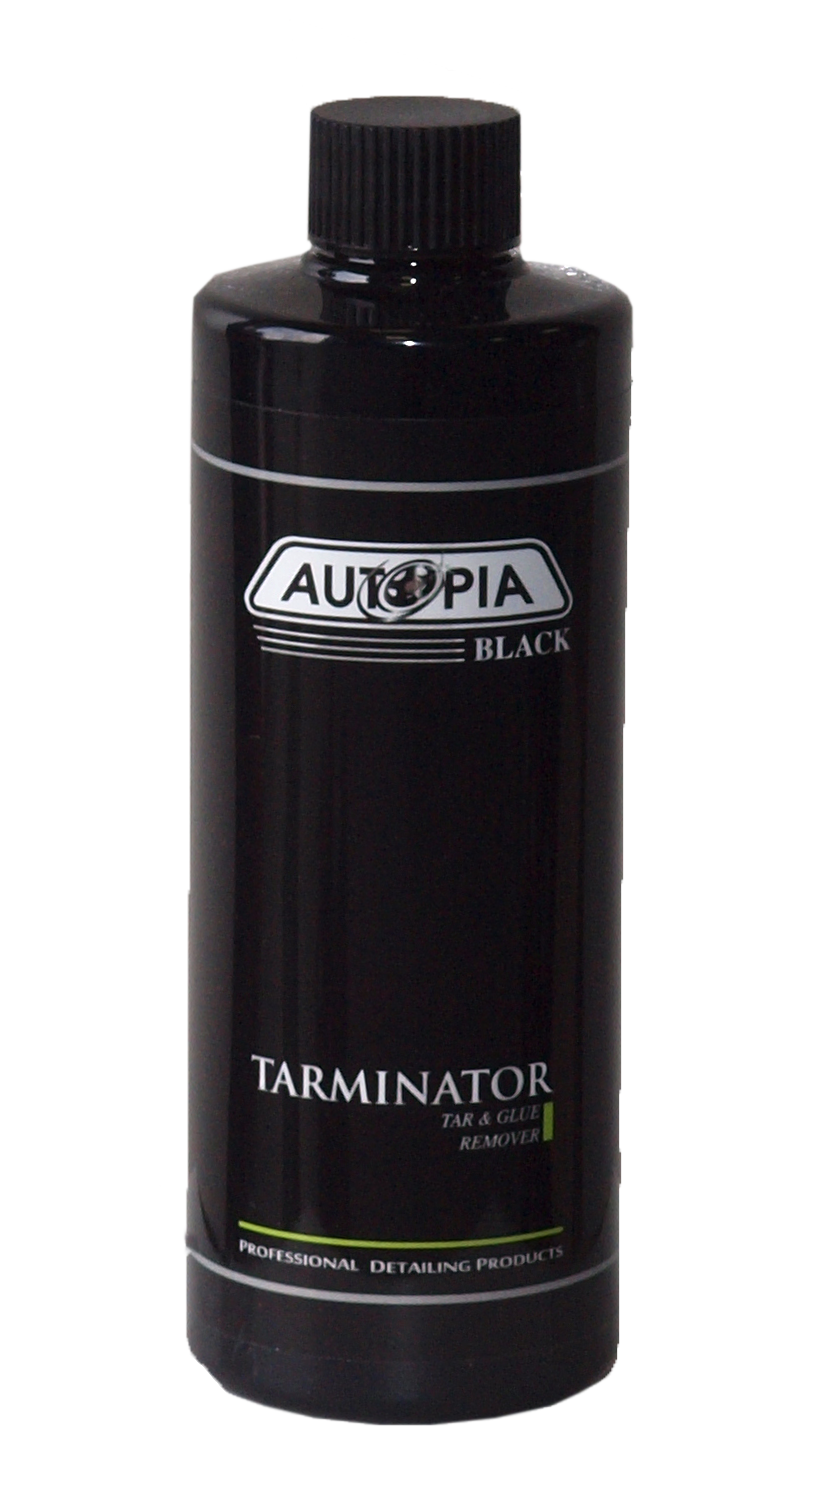 tarminator tar and glue remover